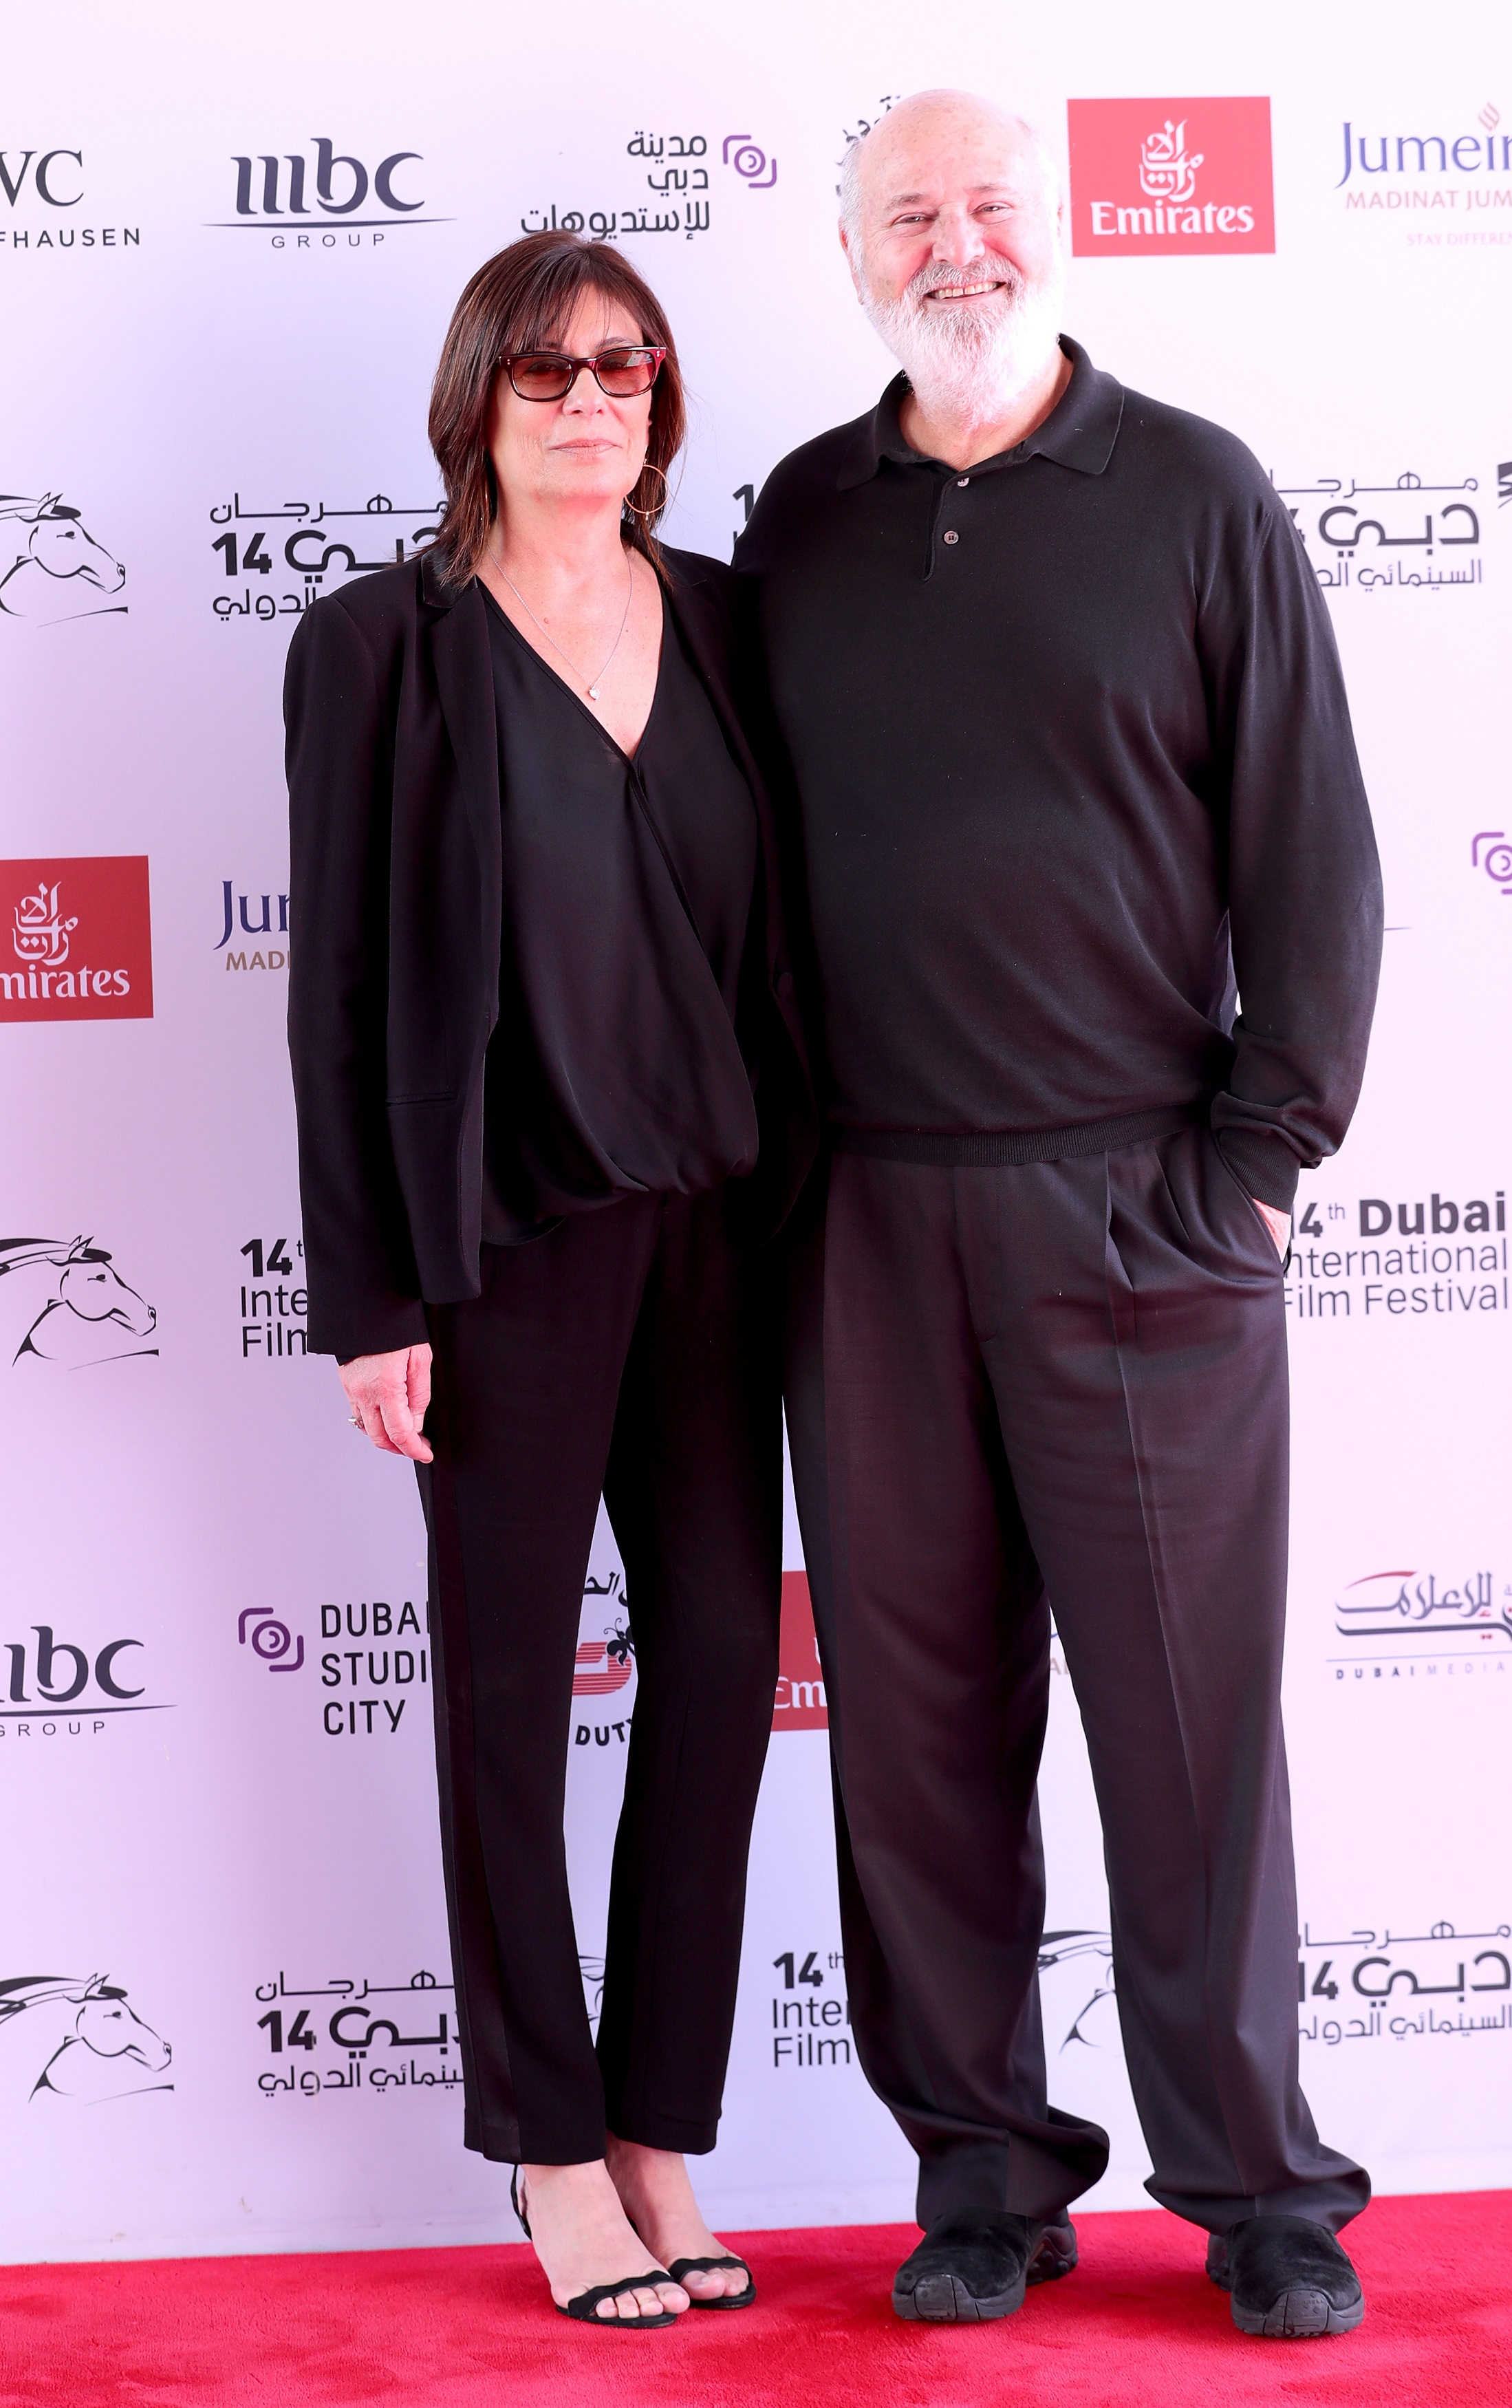 Academy Award-nominated actor, writer, producer and director Rob Reiner along with his wife Michele Singer Reiner at the red carpet in the ongoing Dubai International Film Festival. Photo courtesy: DIFF